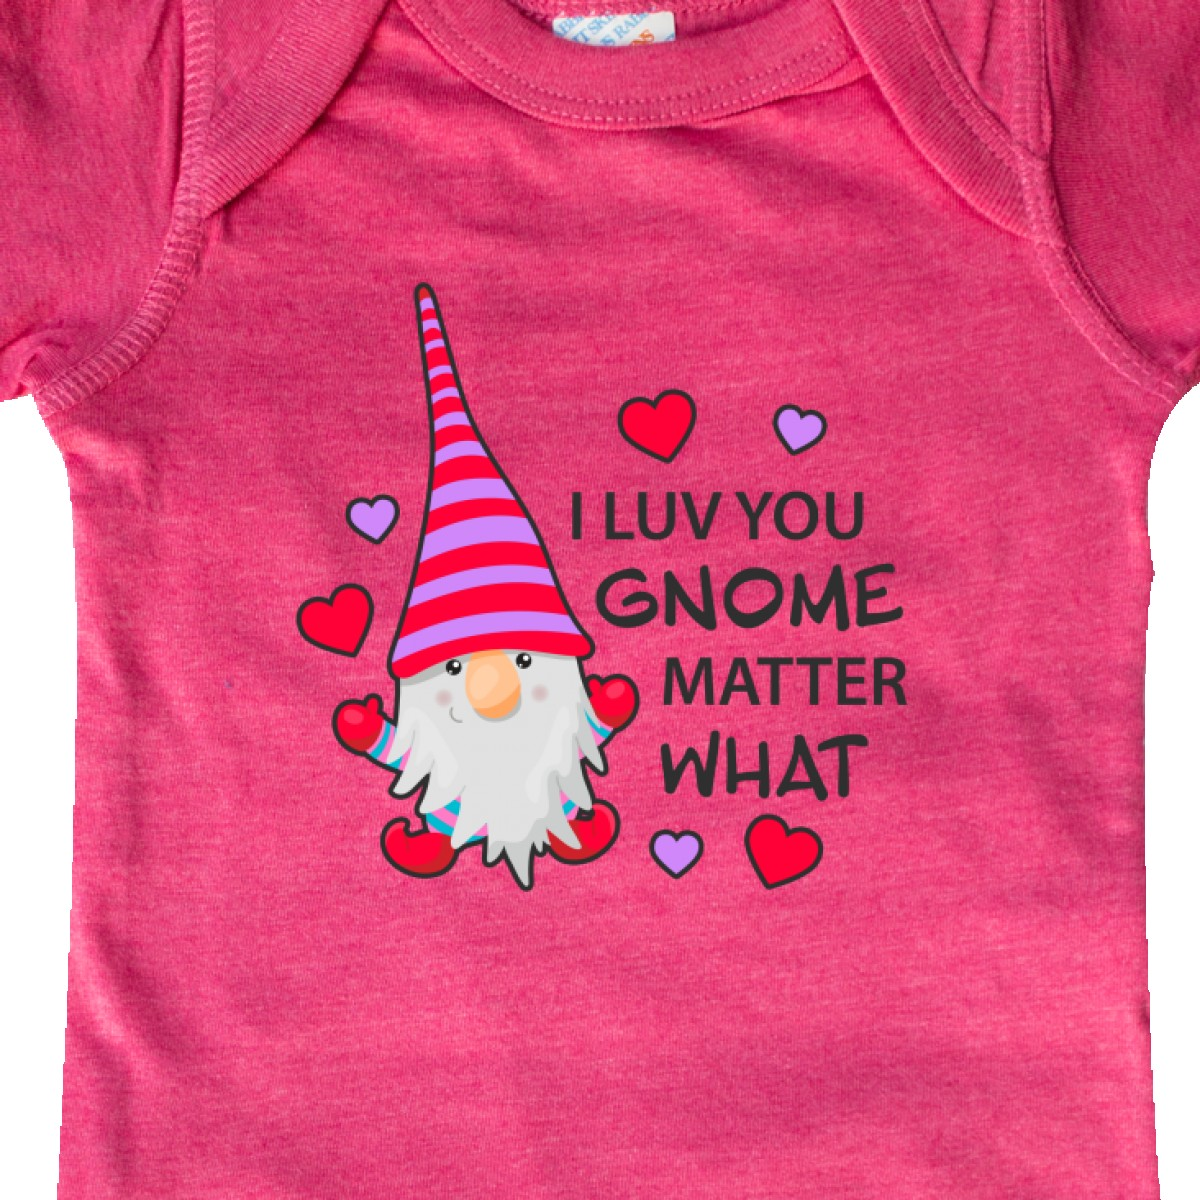 Inktastic-I-Luv-You-Gnome-Matter-What-With-Gnome-And-Hearts-Infant-Creeper-Love 縮圖 24